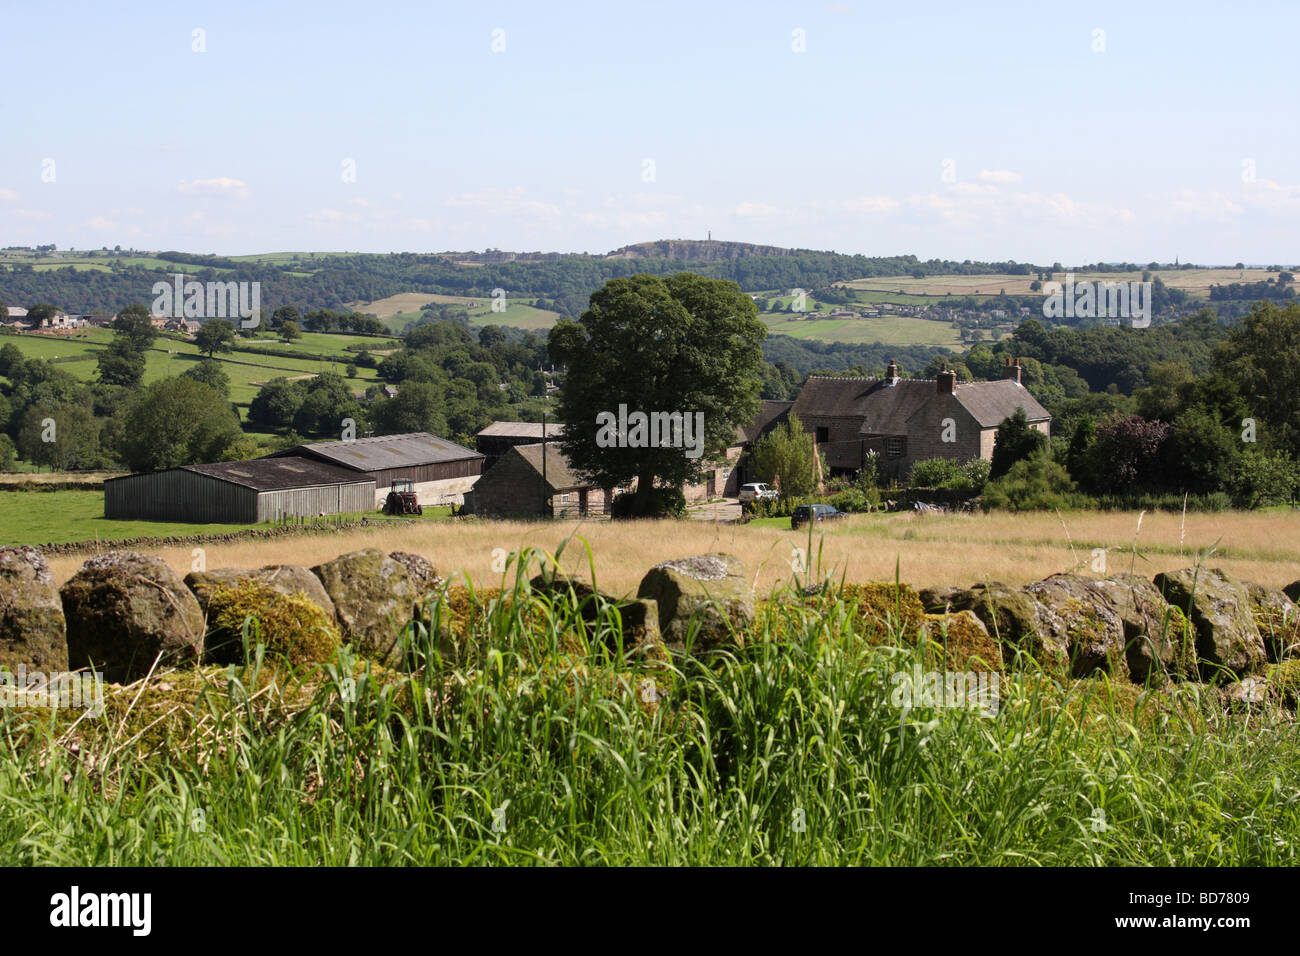 A farm and surrounding countryside in Derbyshire, England, U.K. - Stock Image